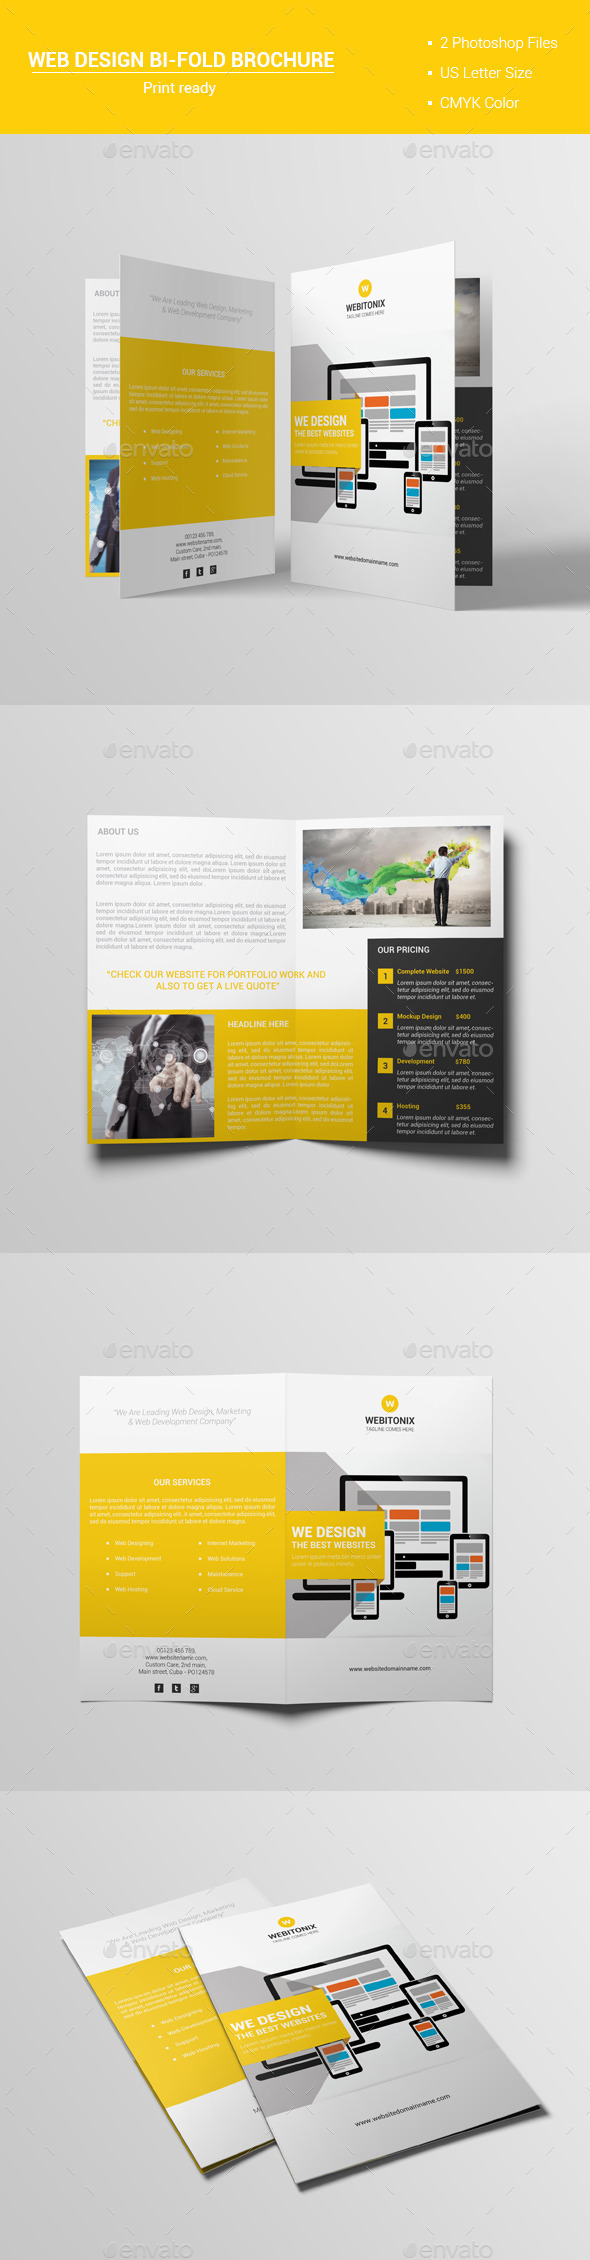 Web Design Bi-Fold Brochure V1 - Corporate Brochures